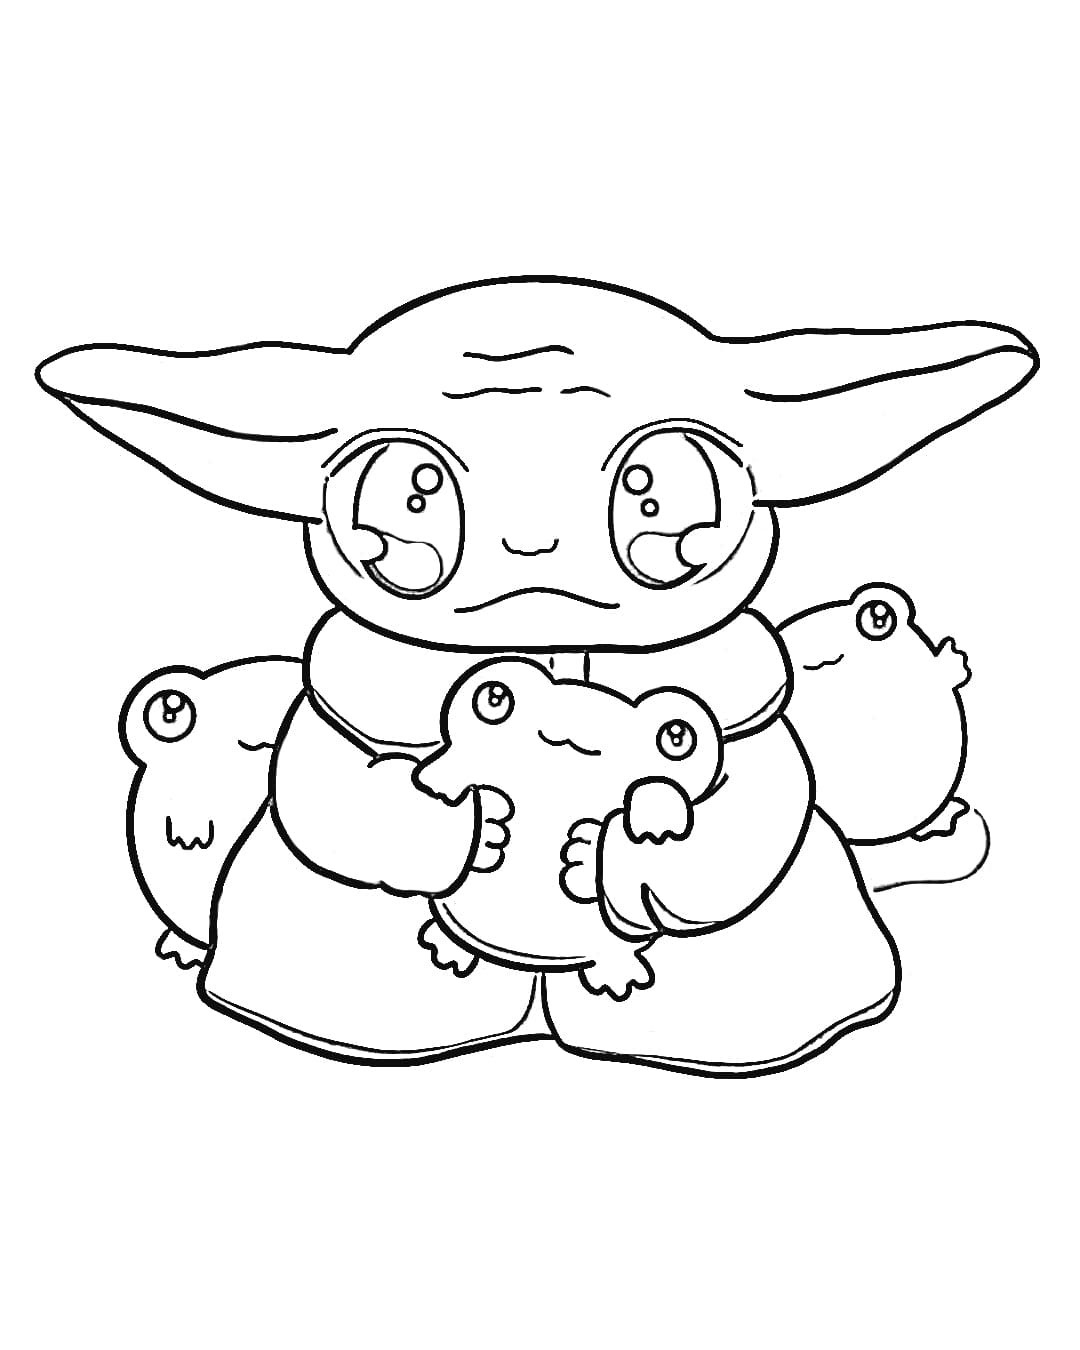 Baby Yoda and toys Coloring Page